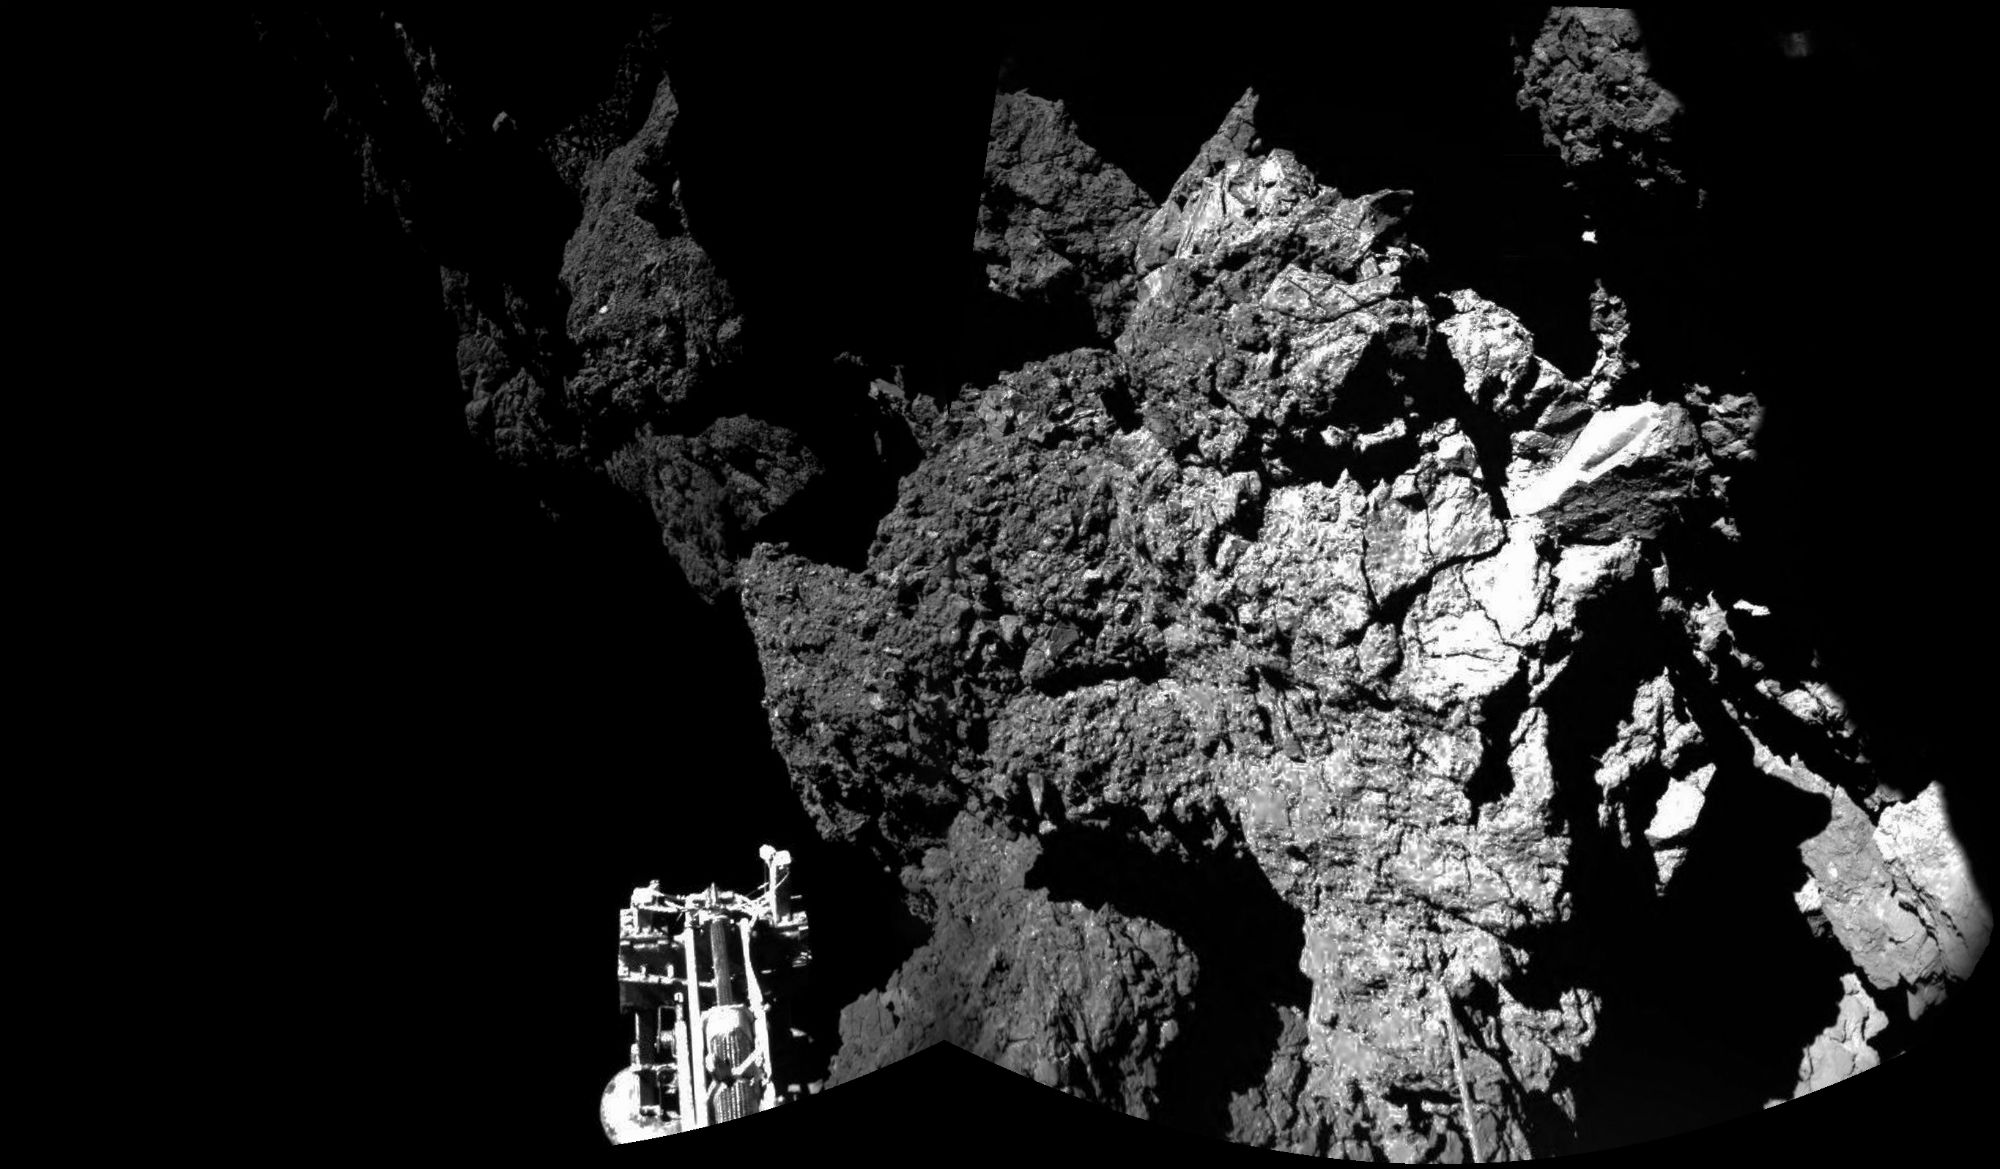 Welcome to a comet image